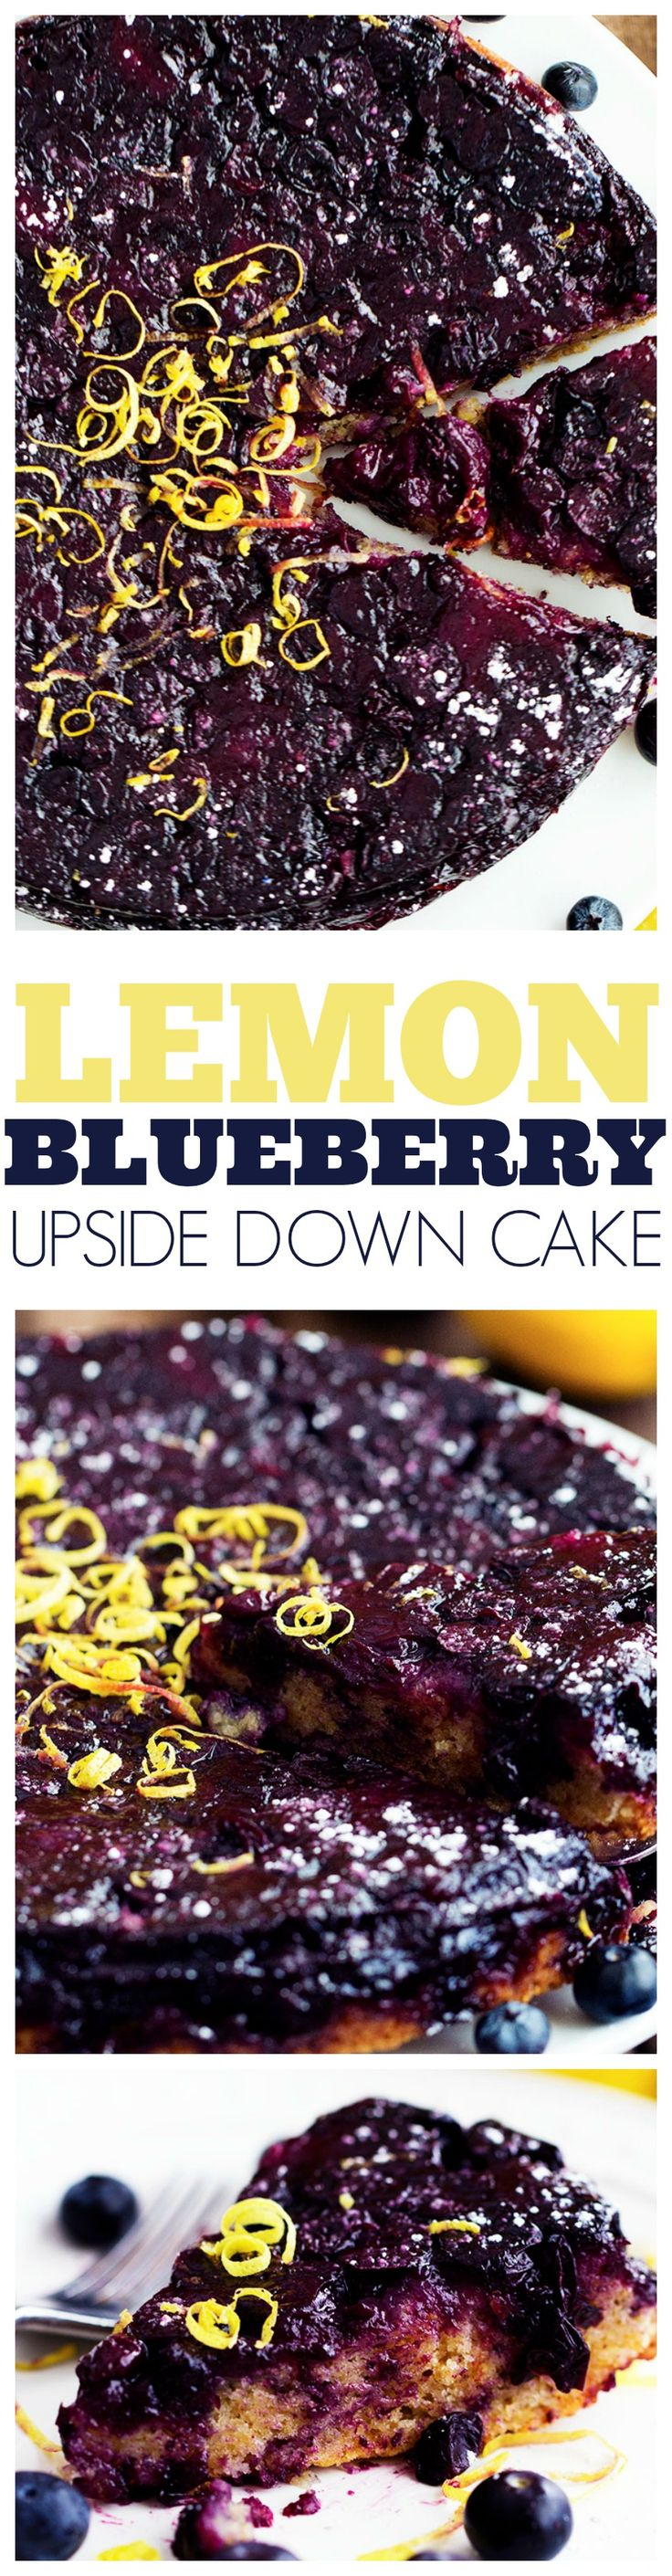 This Blueberry Lemon Upside Down Cake is out of this world!!! The lemon cake is moist and refreshing and the blueberry topping is amazing!